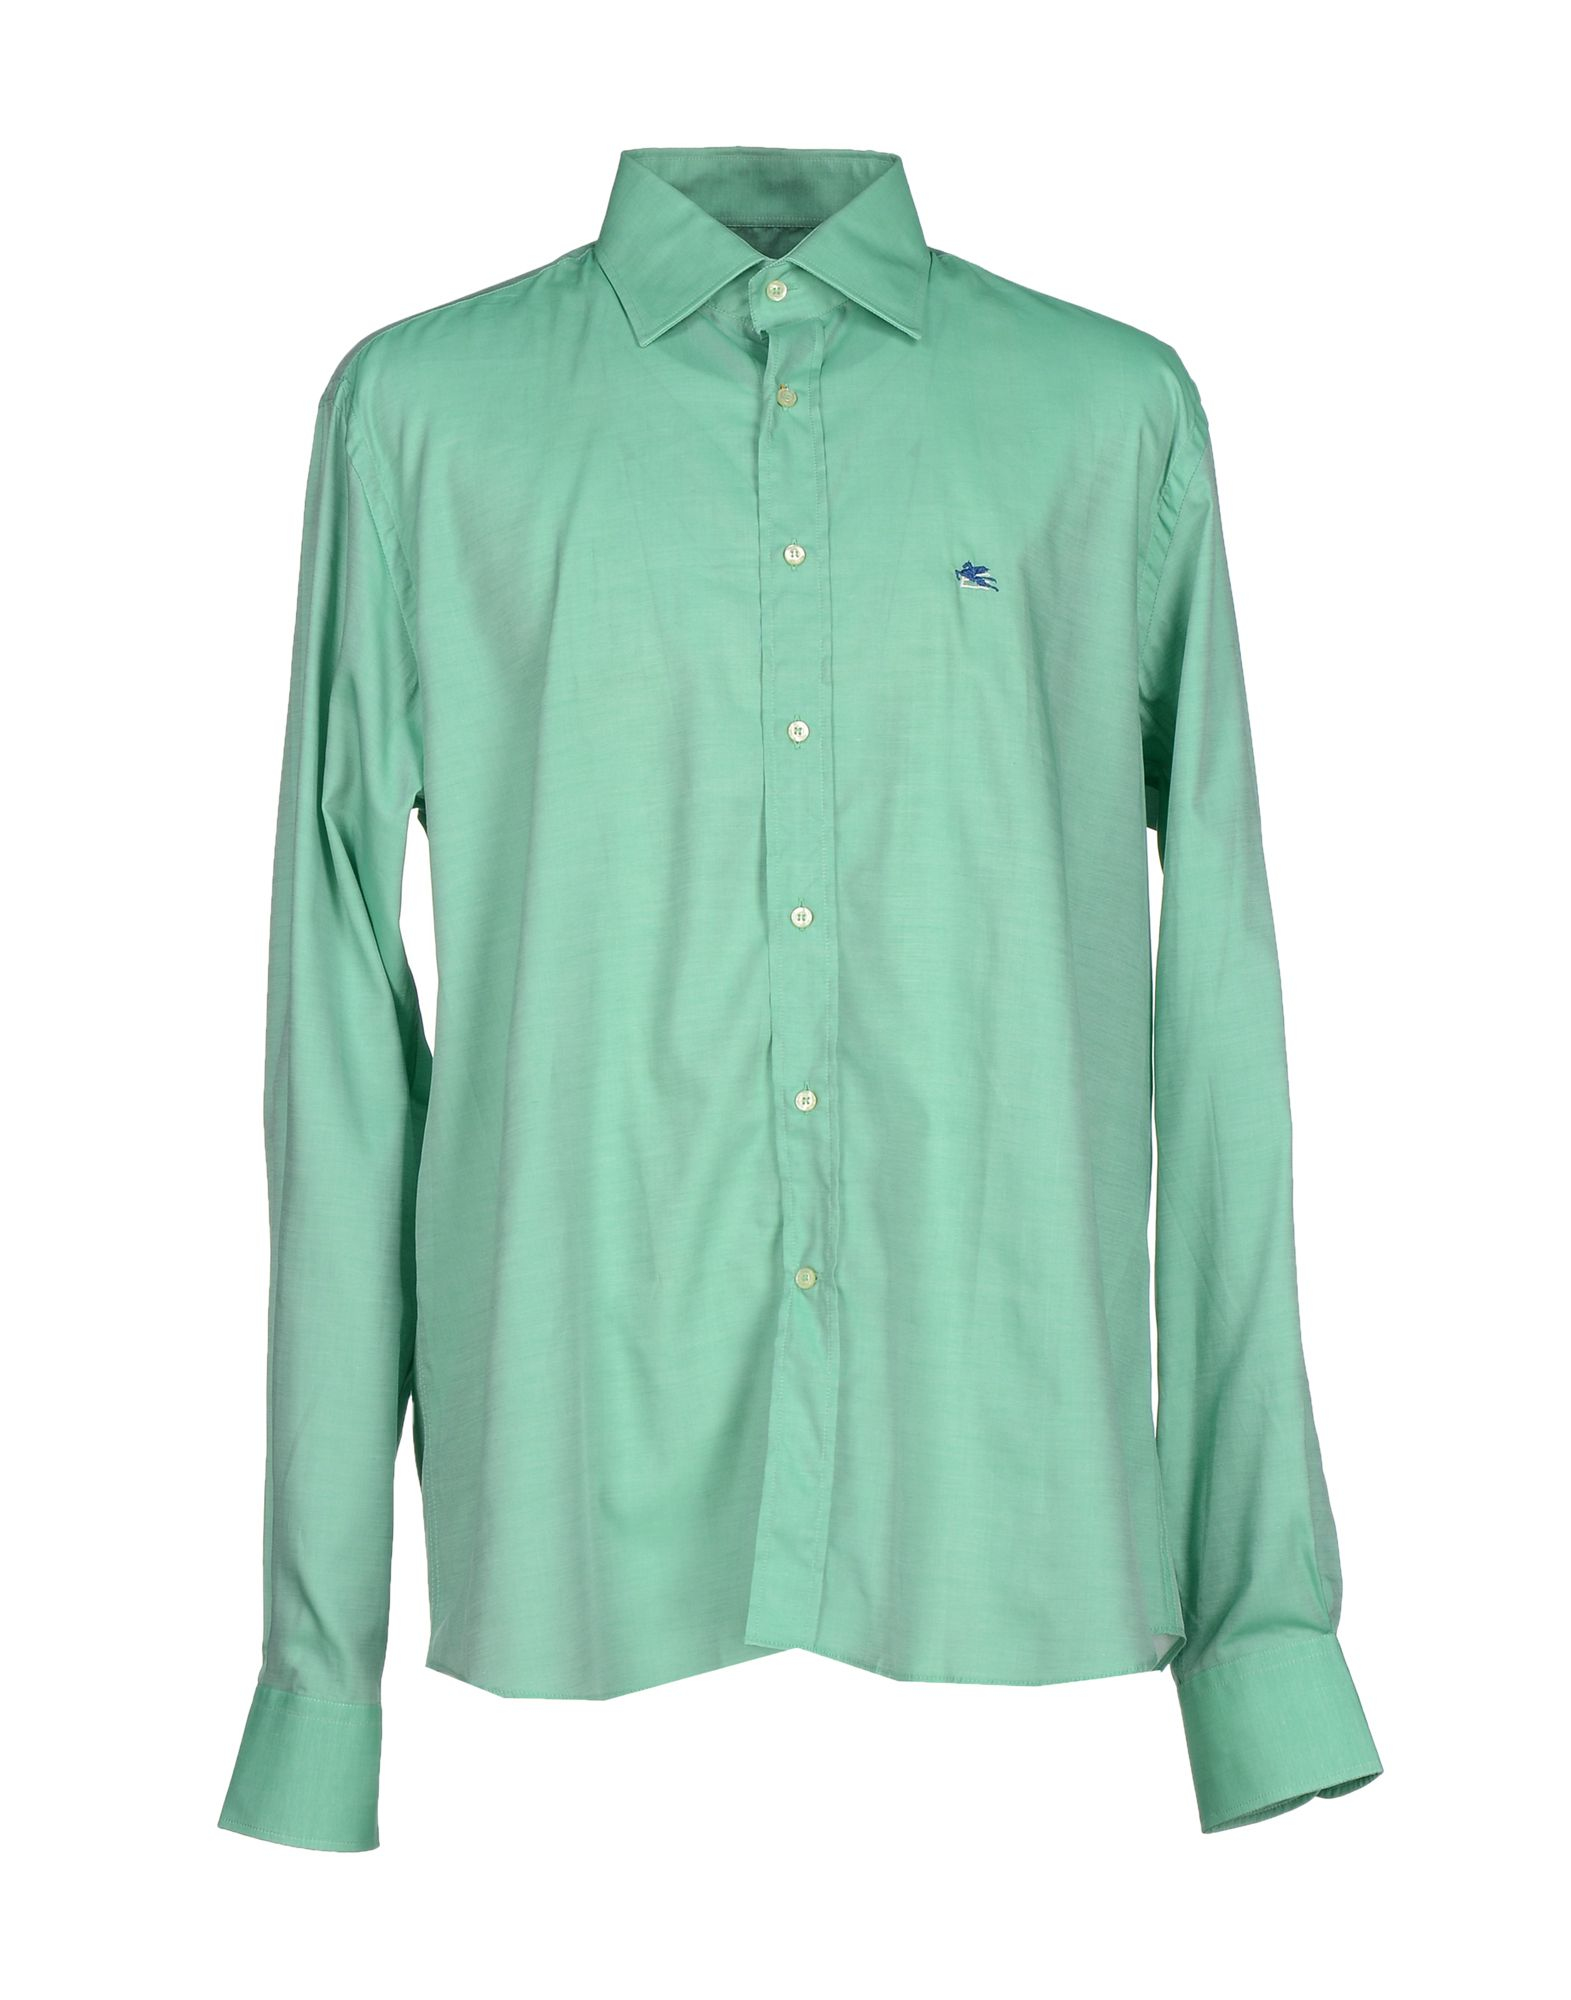 Etro shirt in green for men lyst for Etro men s shirts